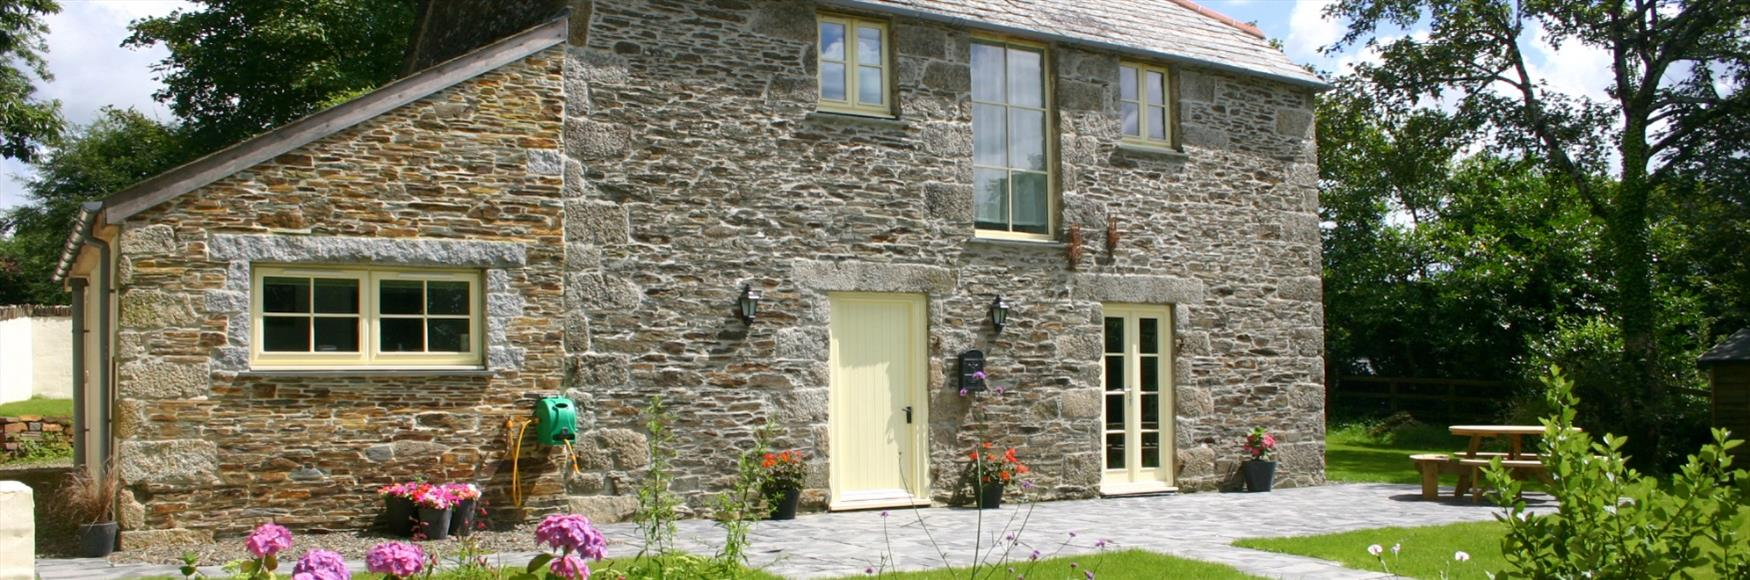 friendly valley in dog cornwall holidays our tamar orig cottages explore